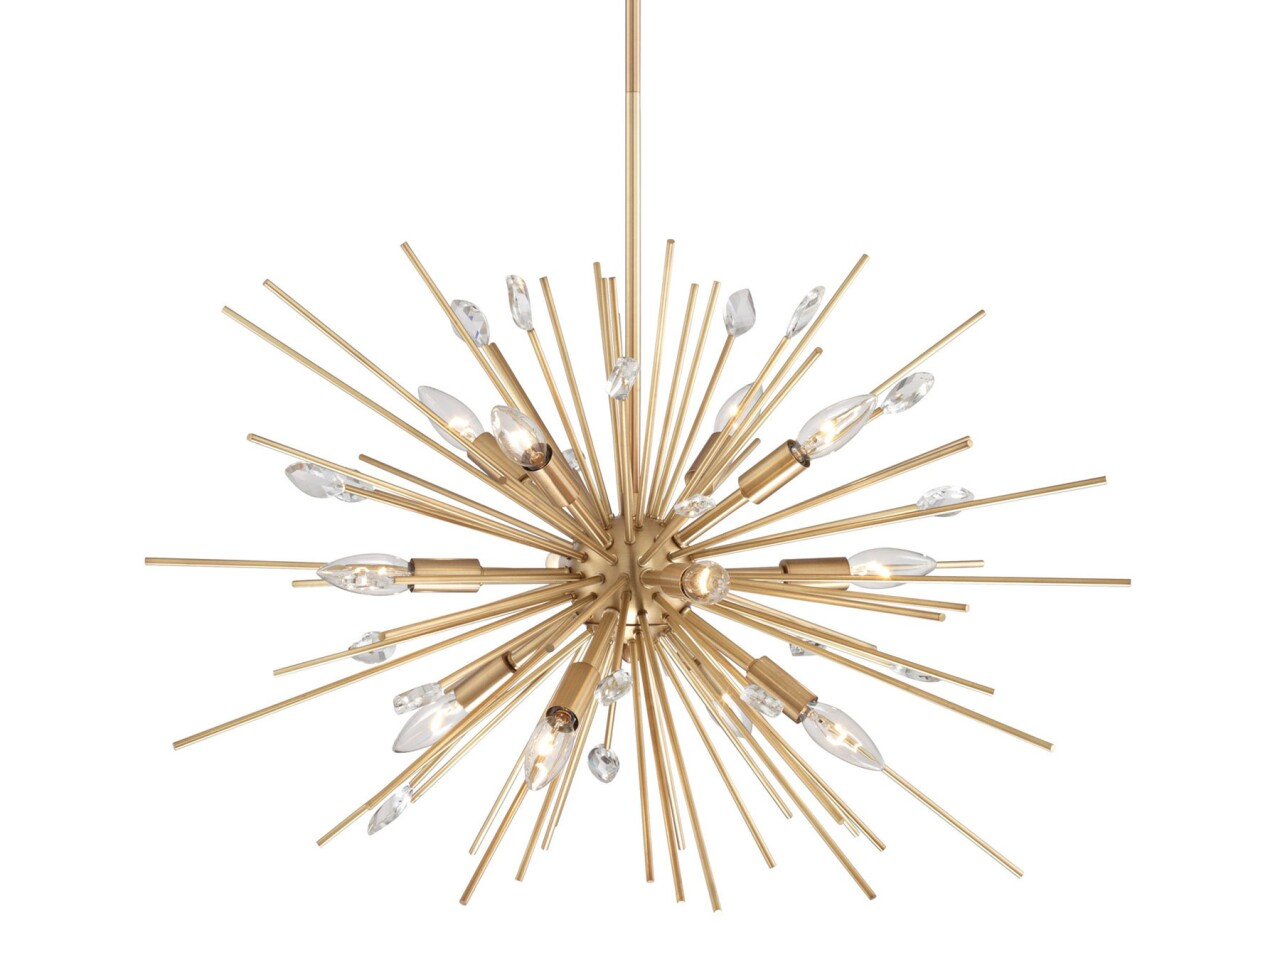 Possini Euro Renae pendant light, $499 at Lamps Plus.